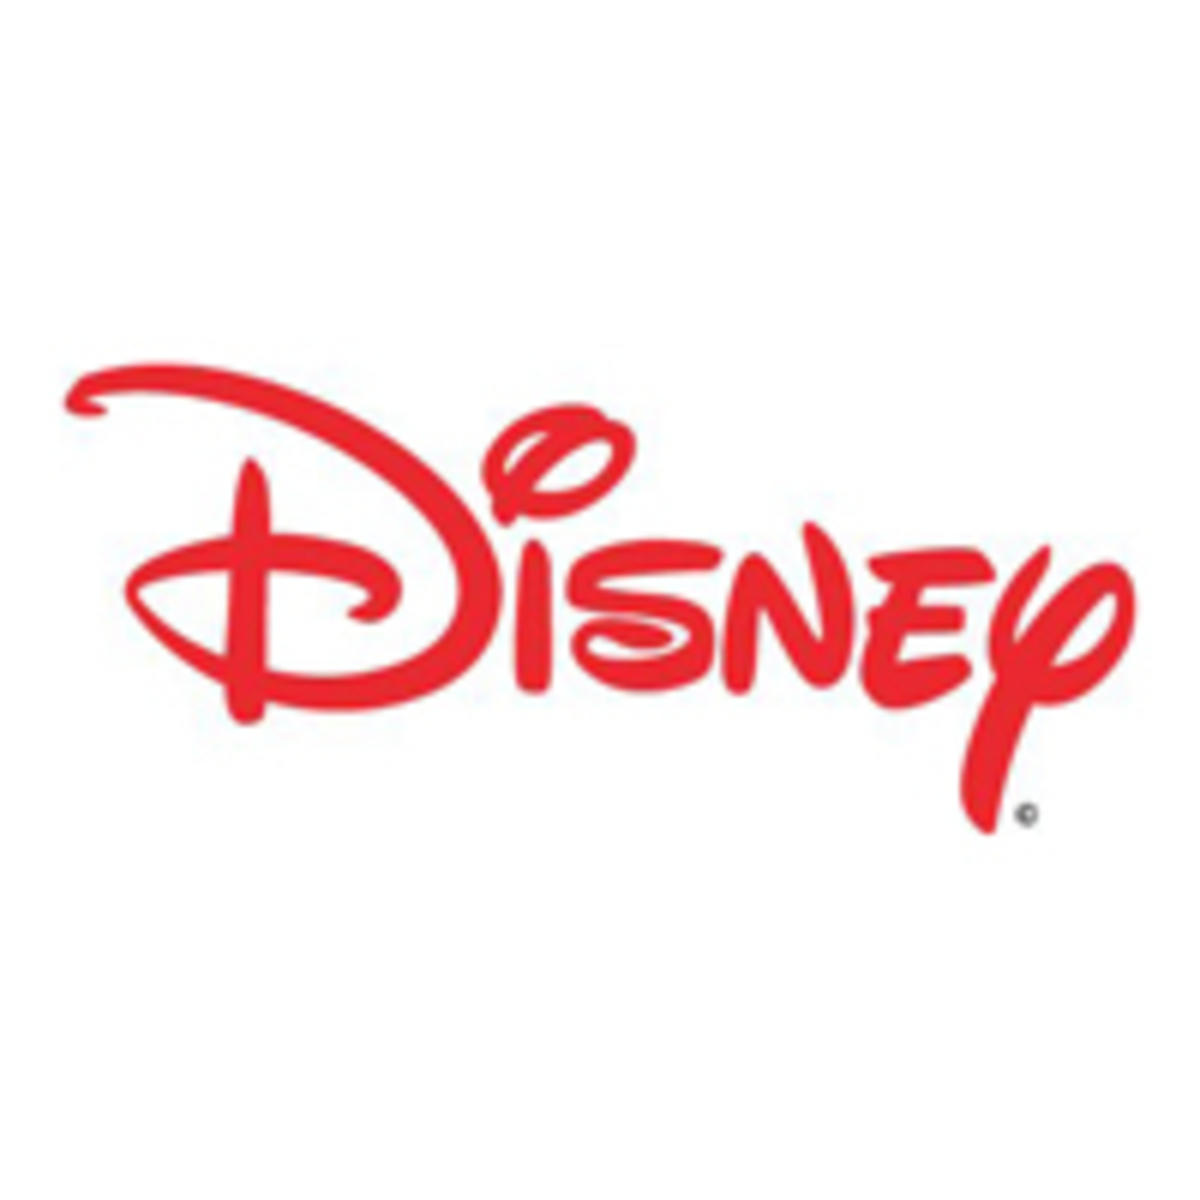 6nuklc01we disneylogo